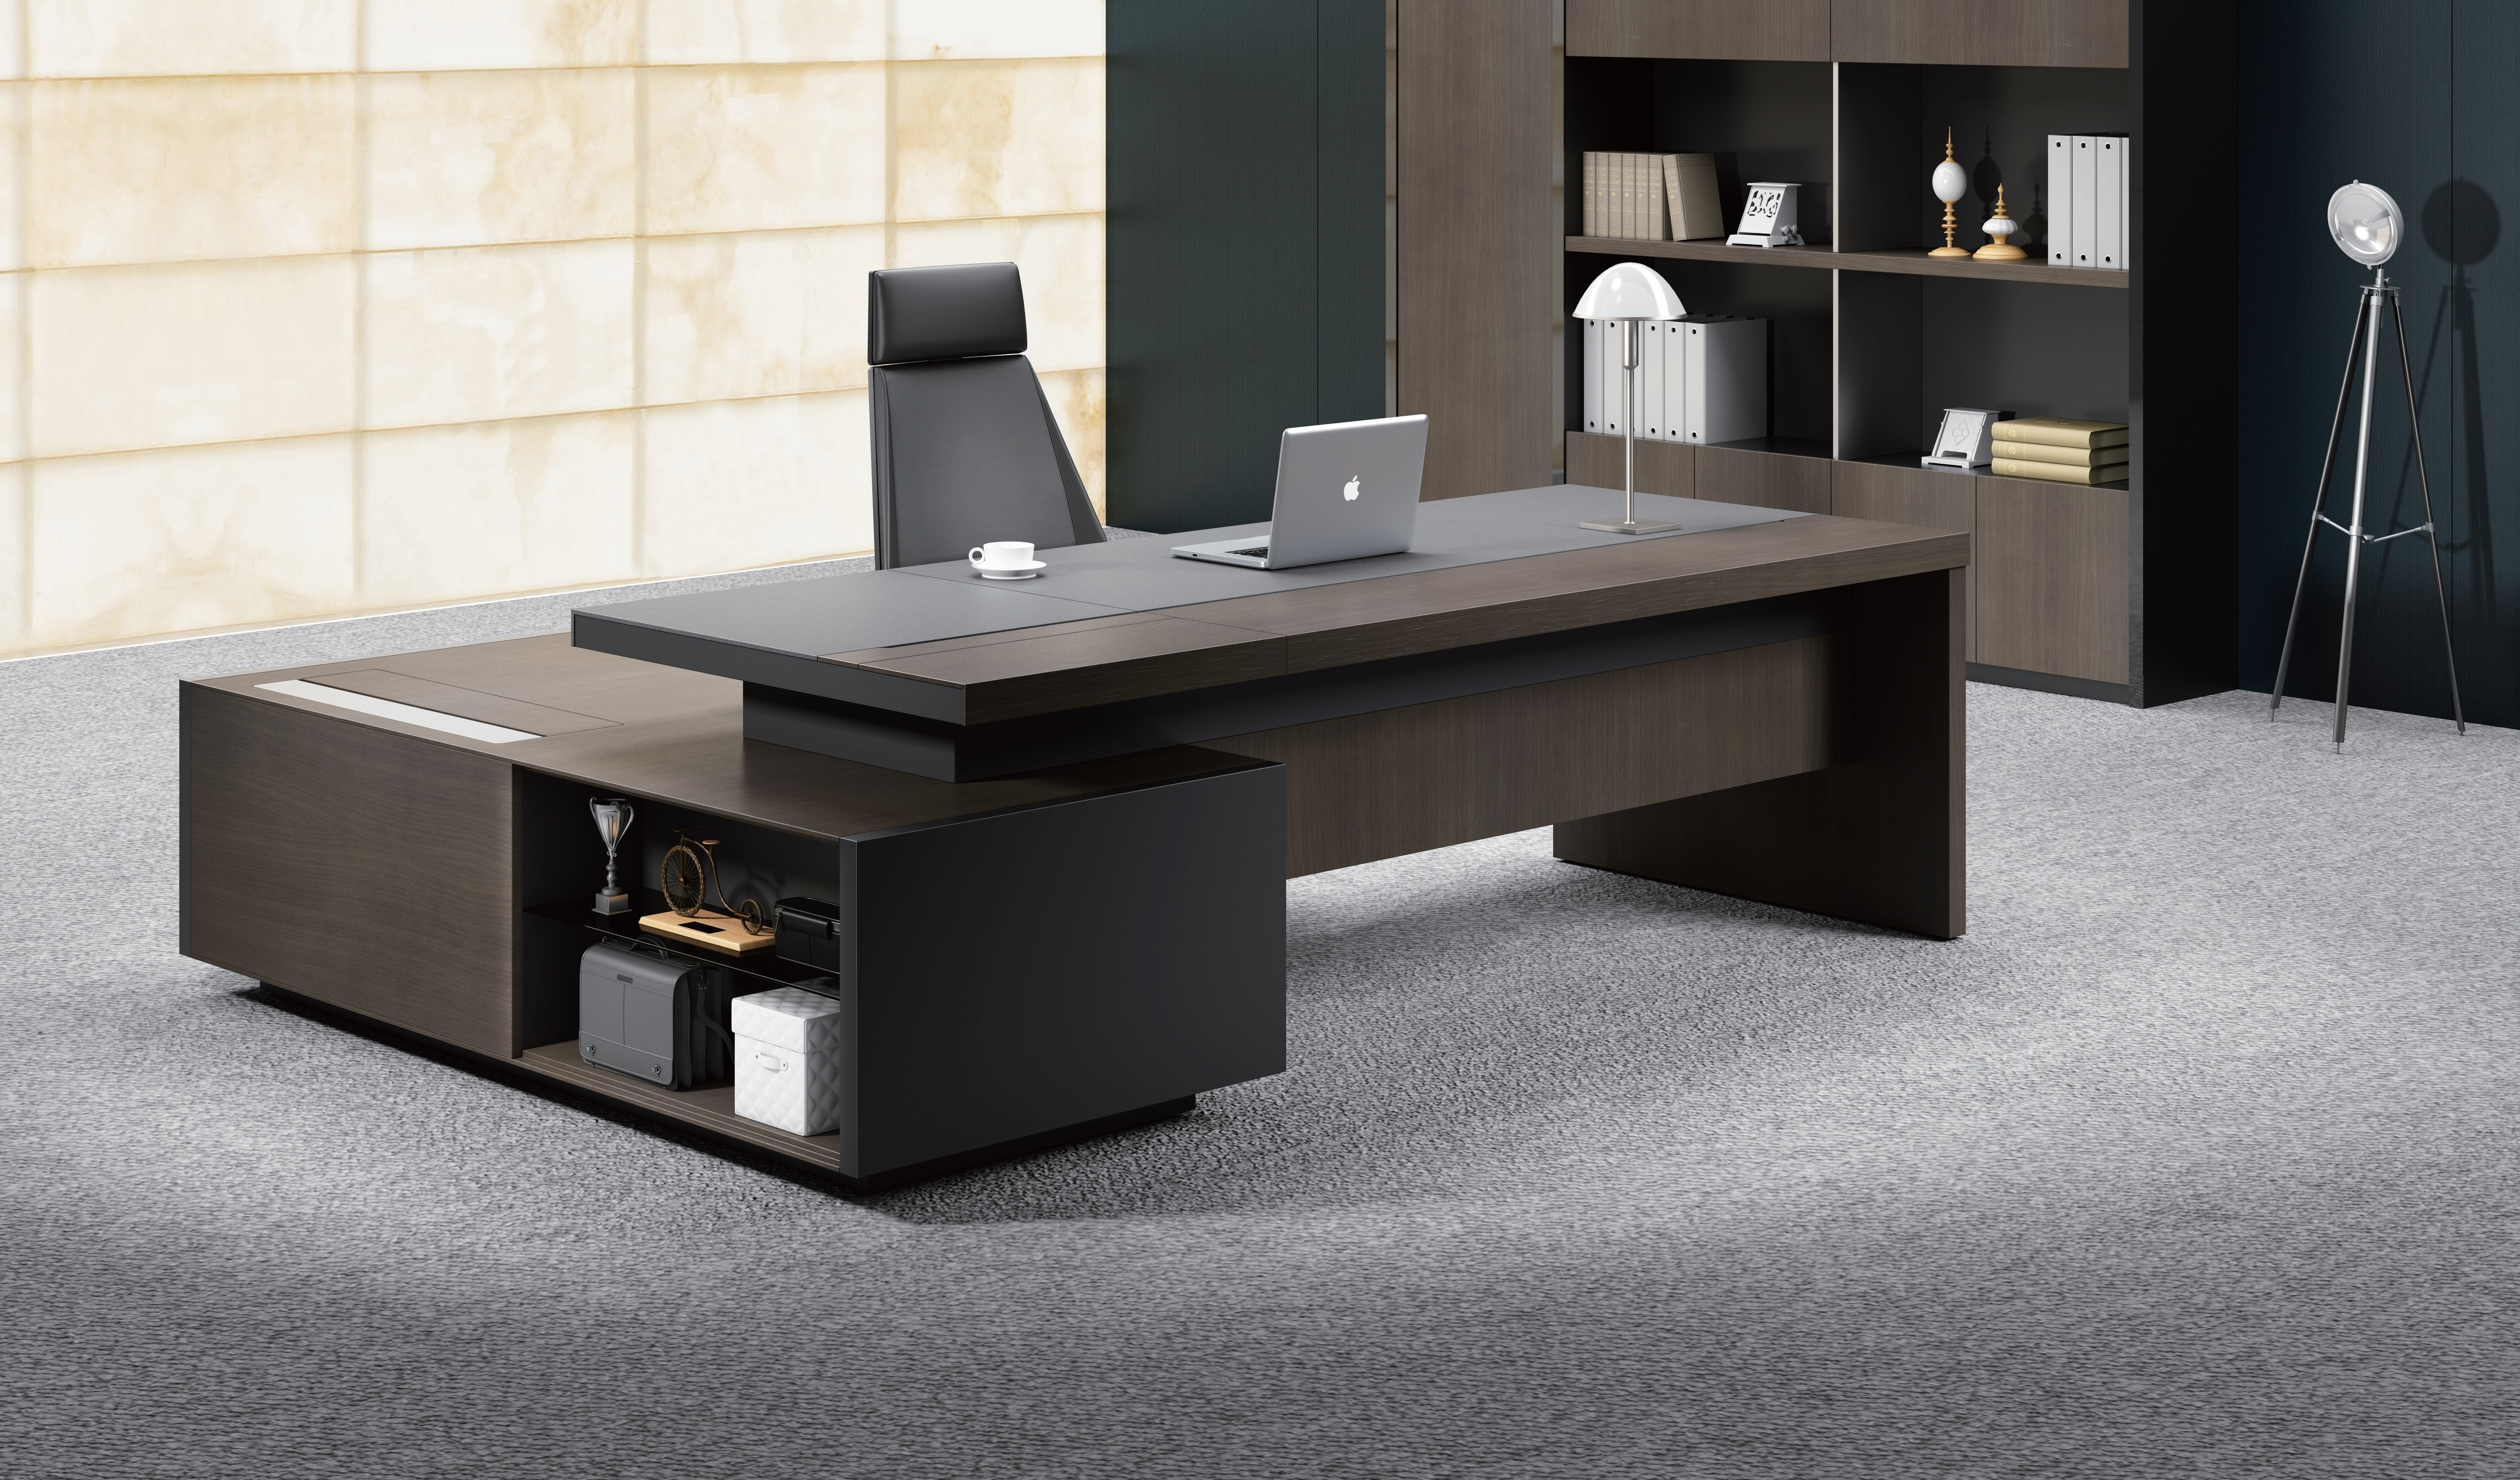 office tables and chairs images sams 2 boss 39s cabin furniture shop in chennai